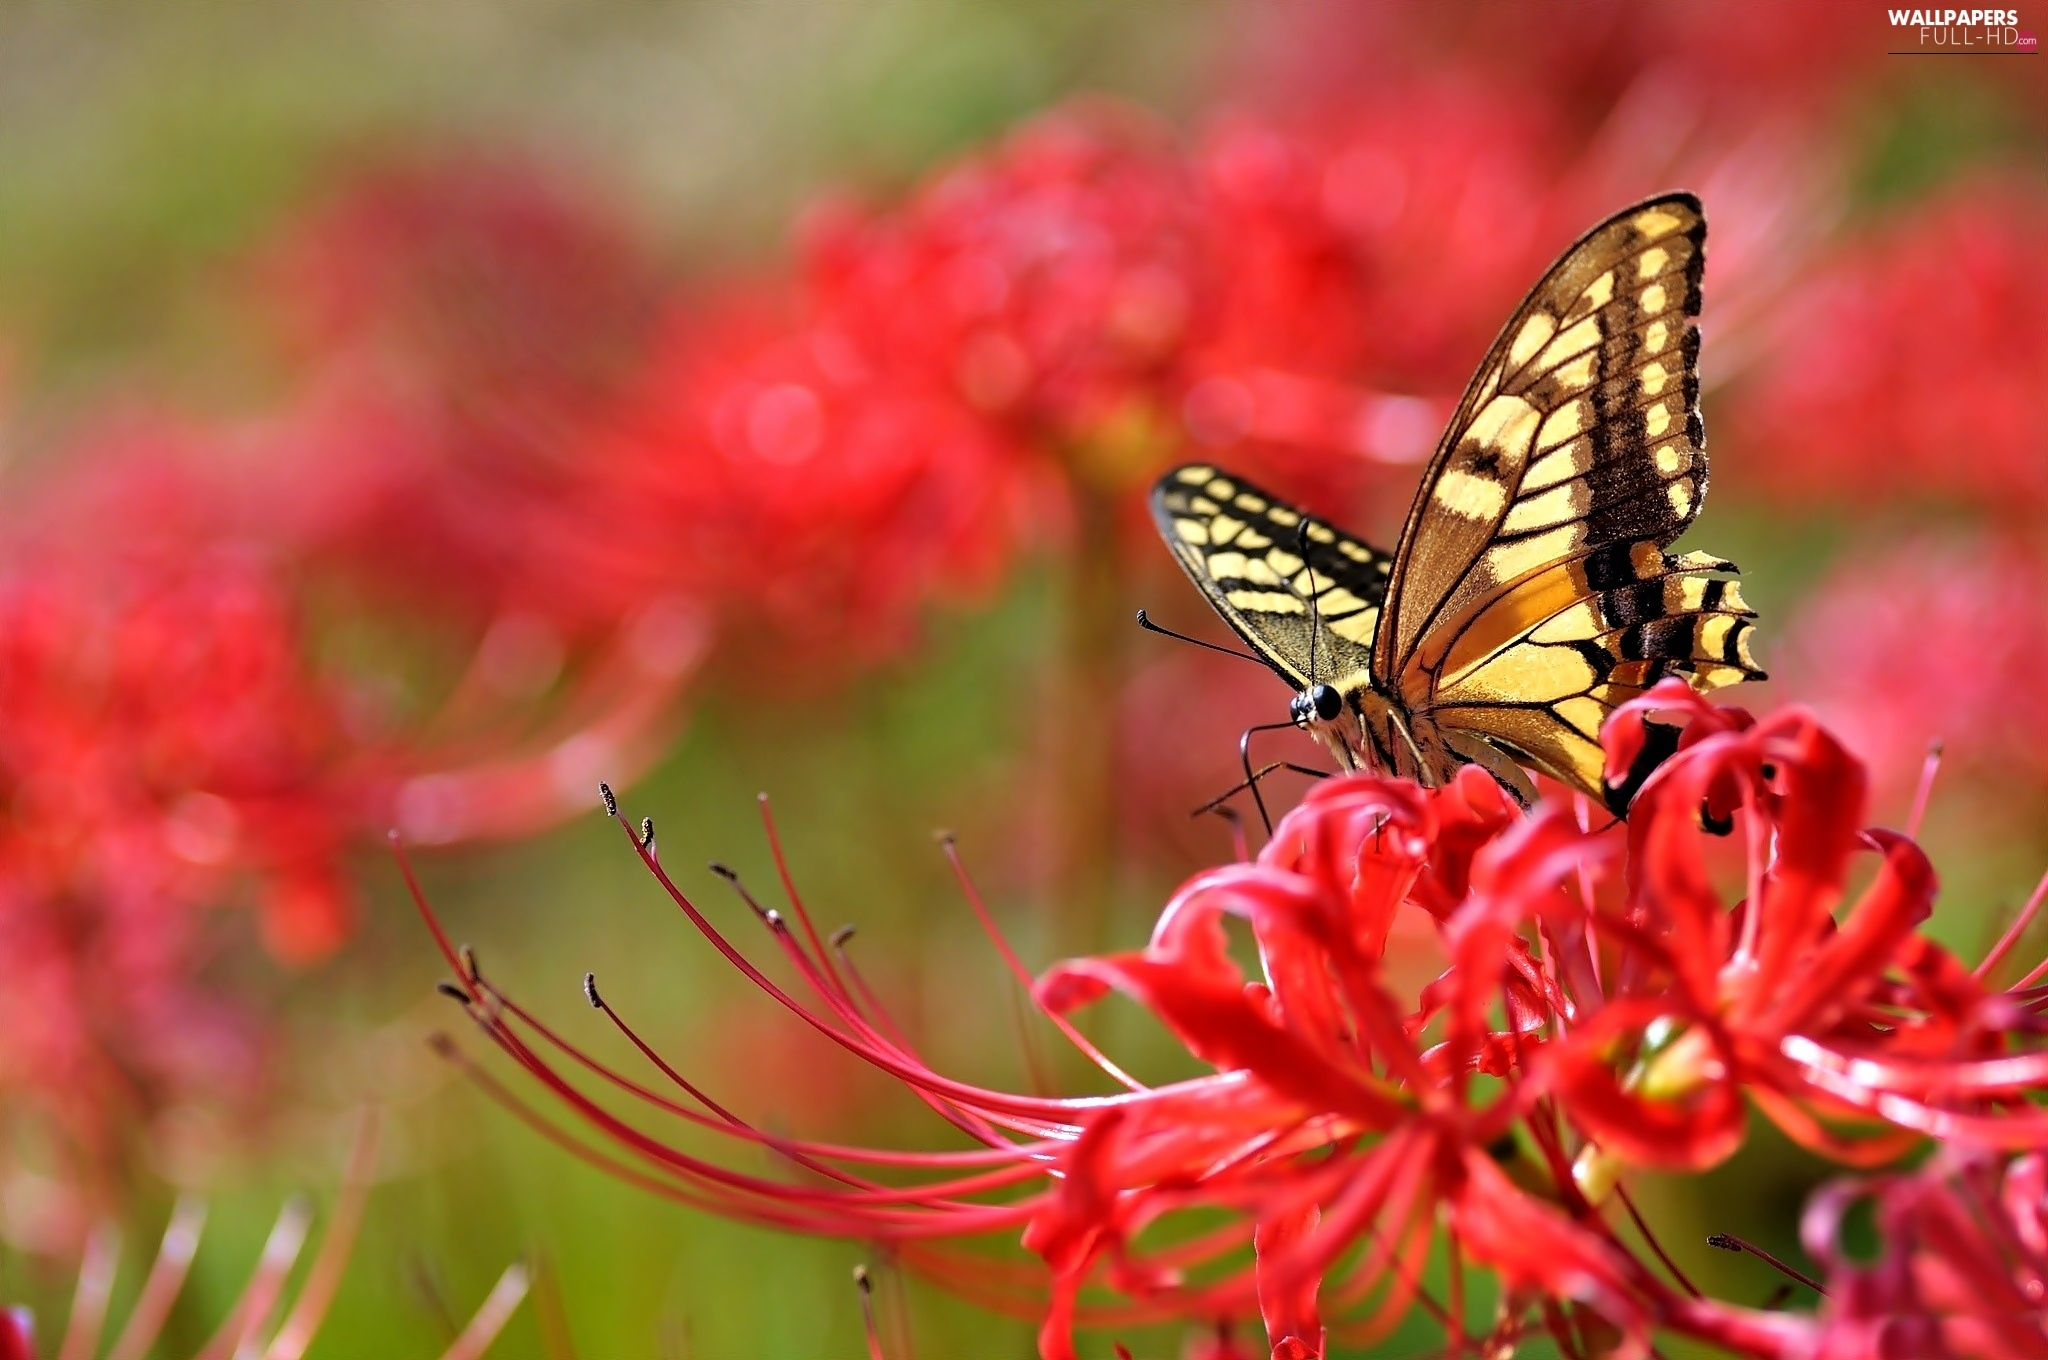 Red, Colourfull Flowers, butterfly